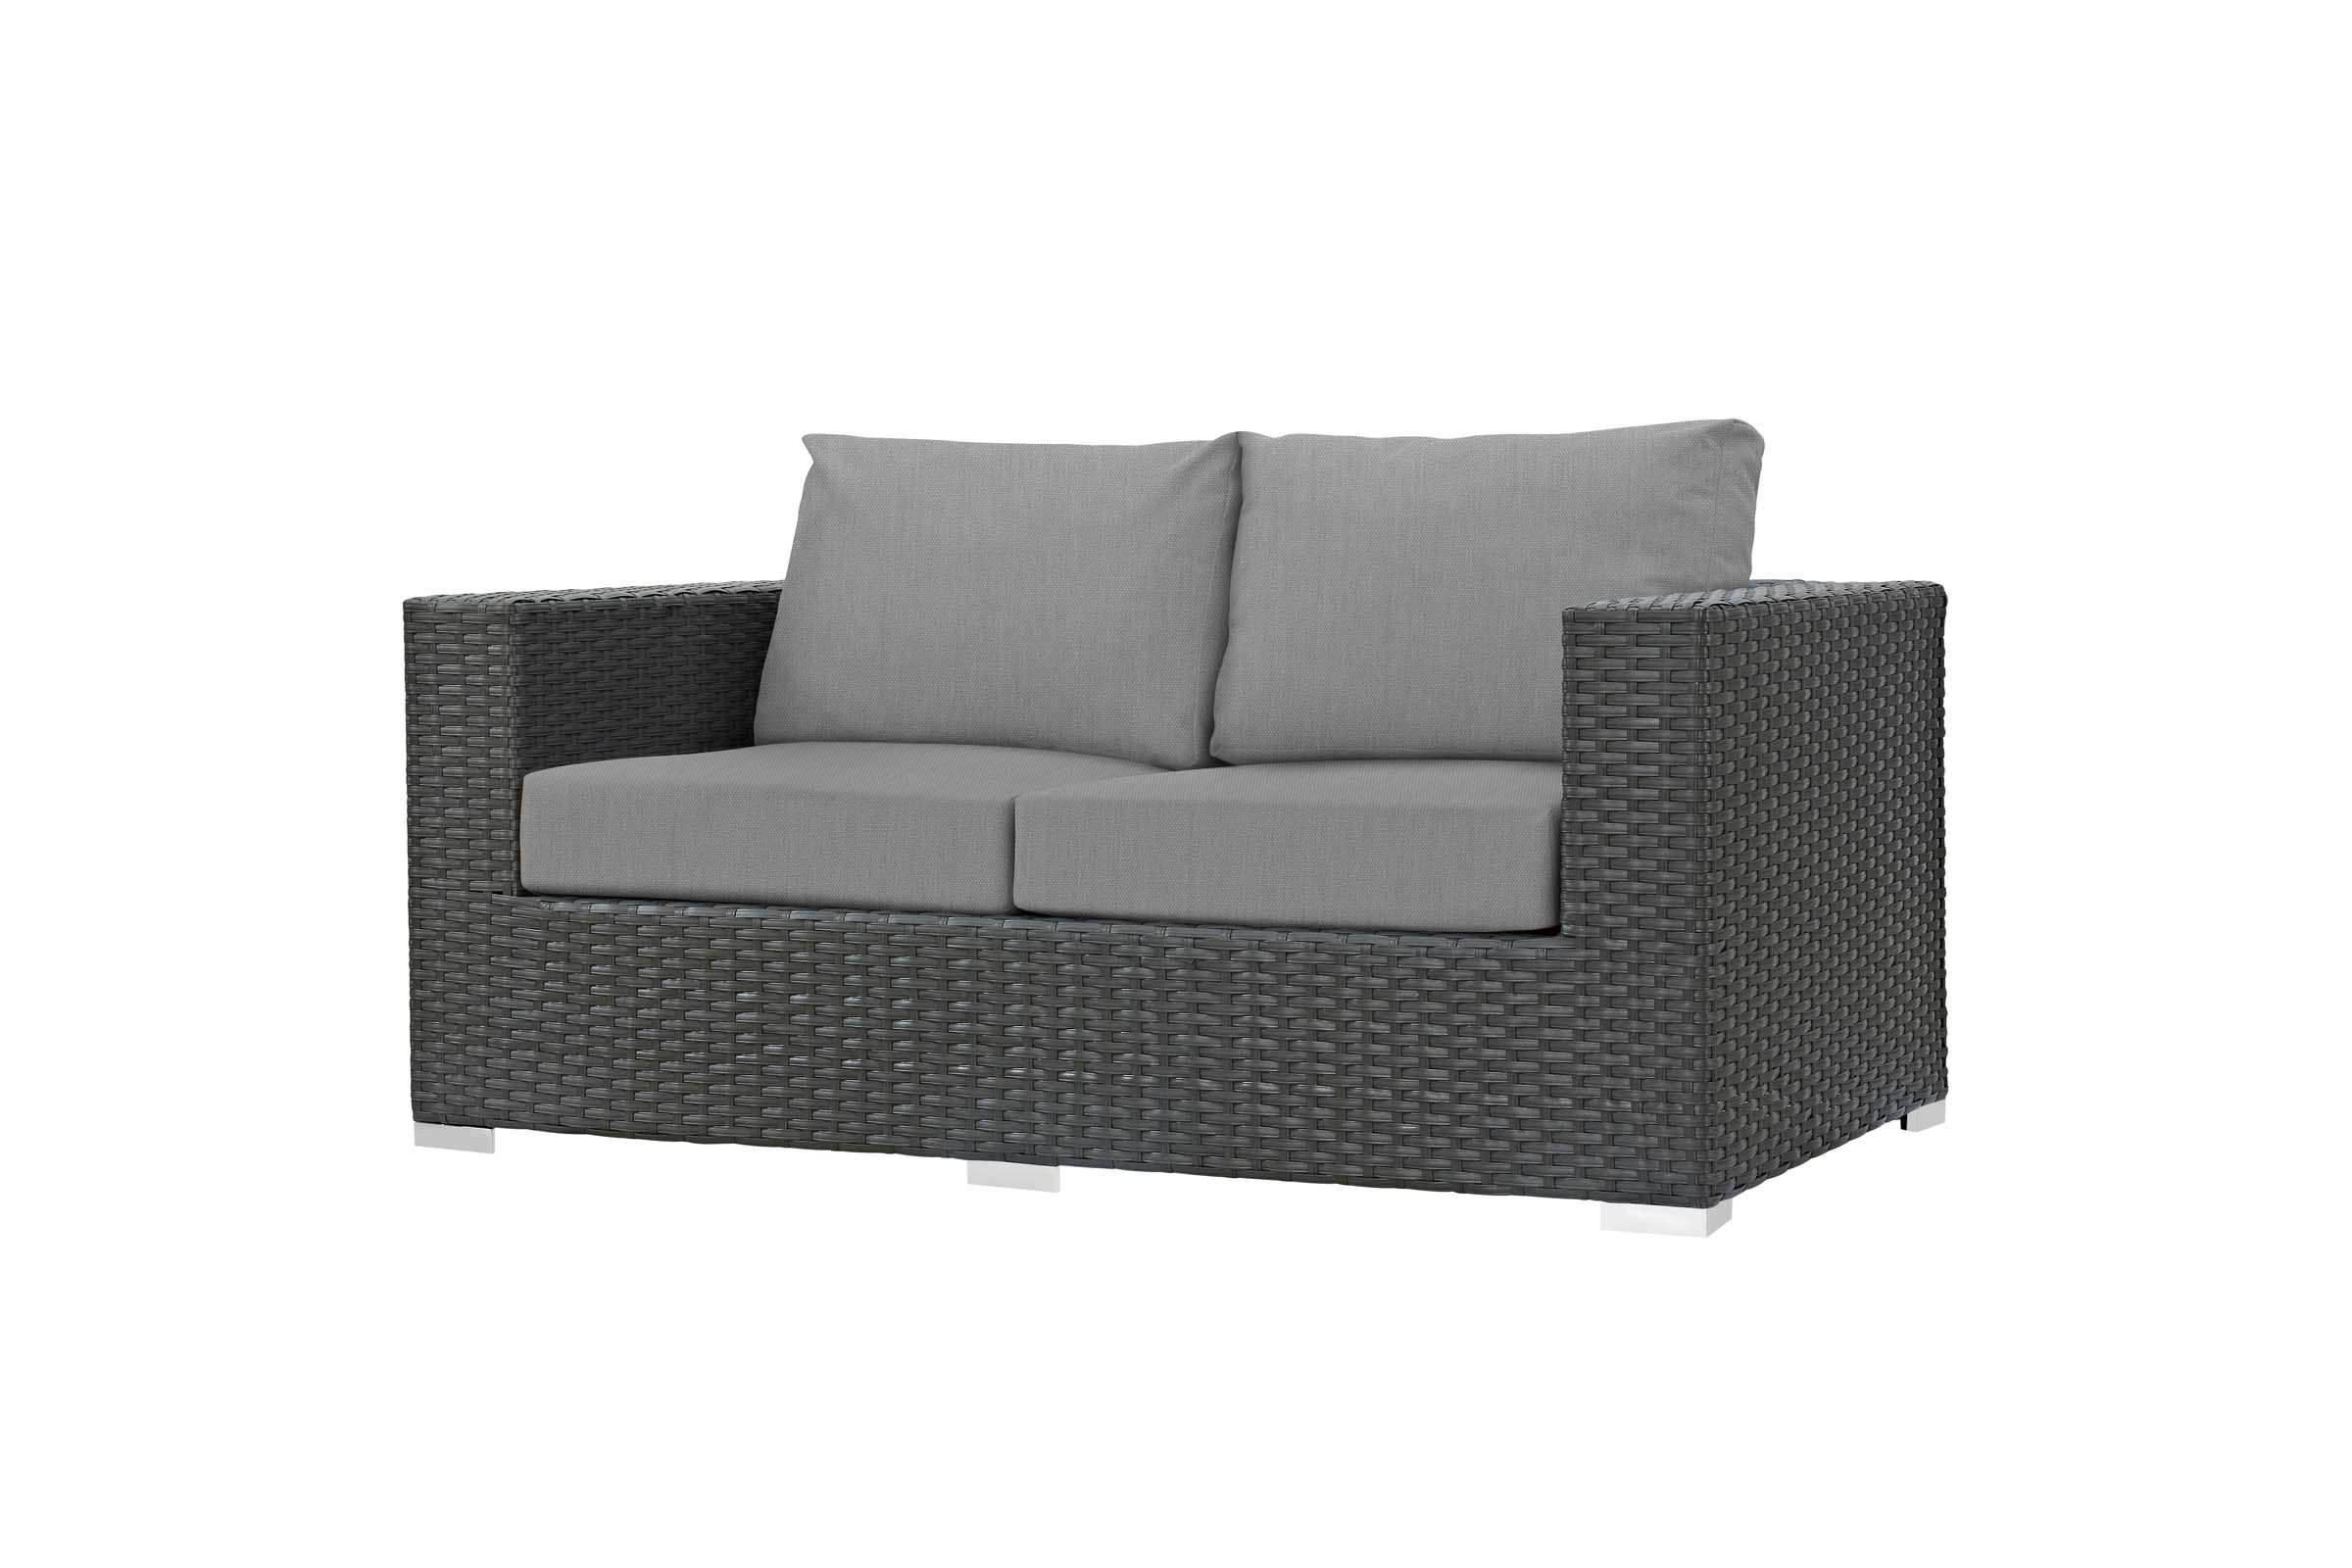 Falmouth Loveseats With Cushions Intended For Well Known Sojourn Outdoor Patio Wicker Rattan Sunbrella¨ Loveseat In (View 15 of 20)